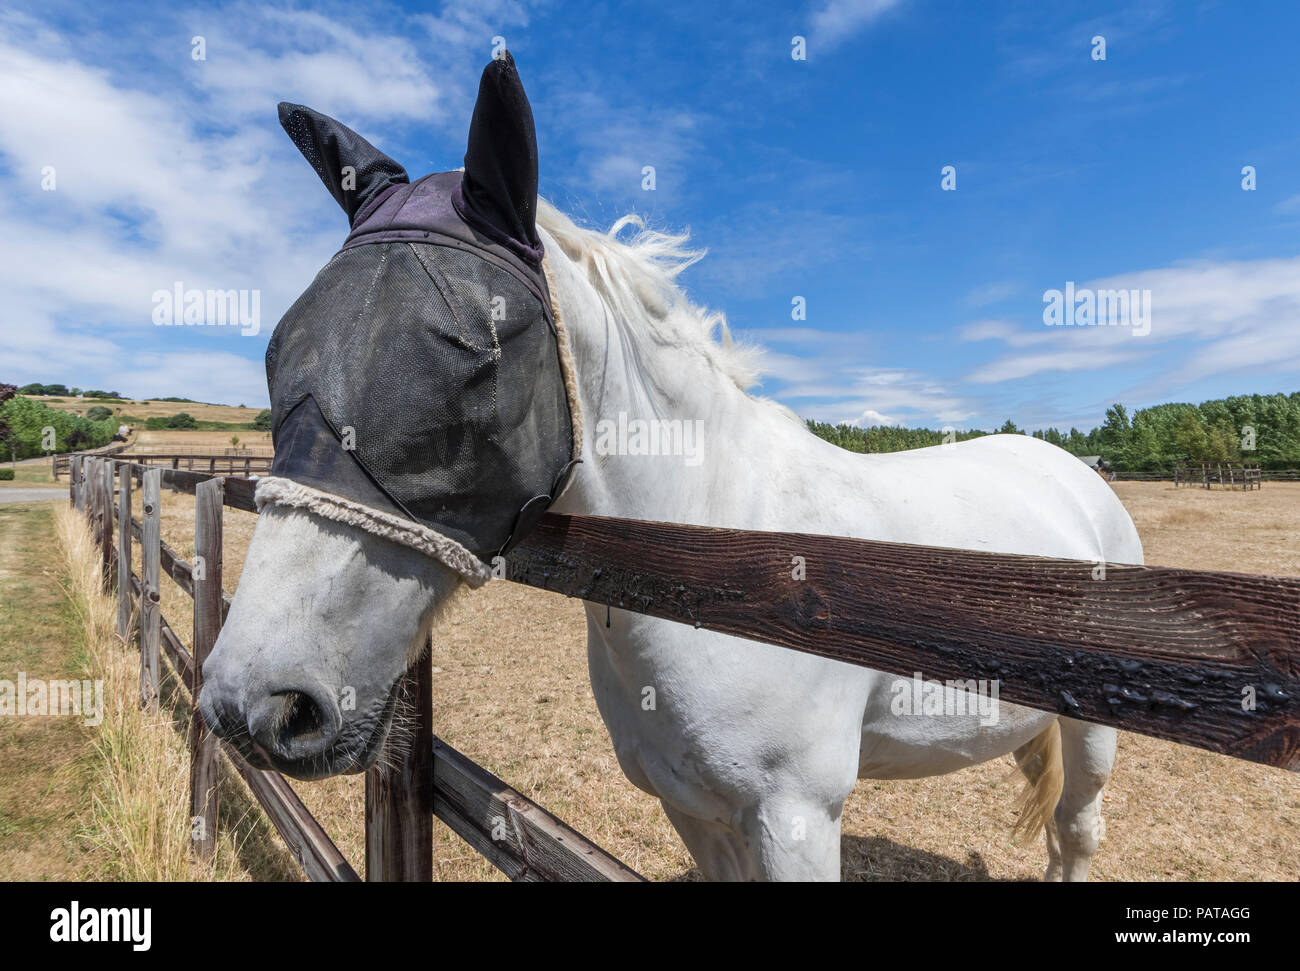 White horse in Summer looking over a fence, wearing a mesh fly veil protection mask on its head & ears to protect from flies, in West Sussex, UK - Stock Image